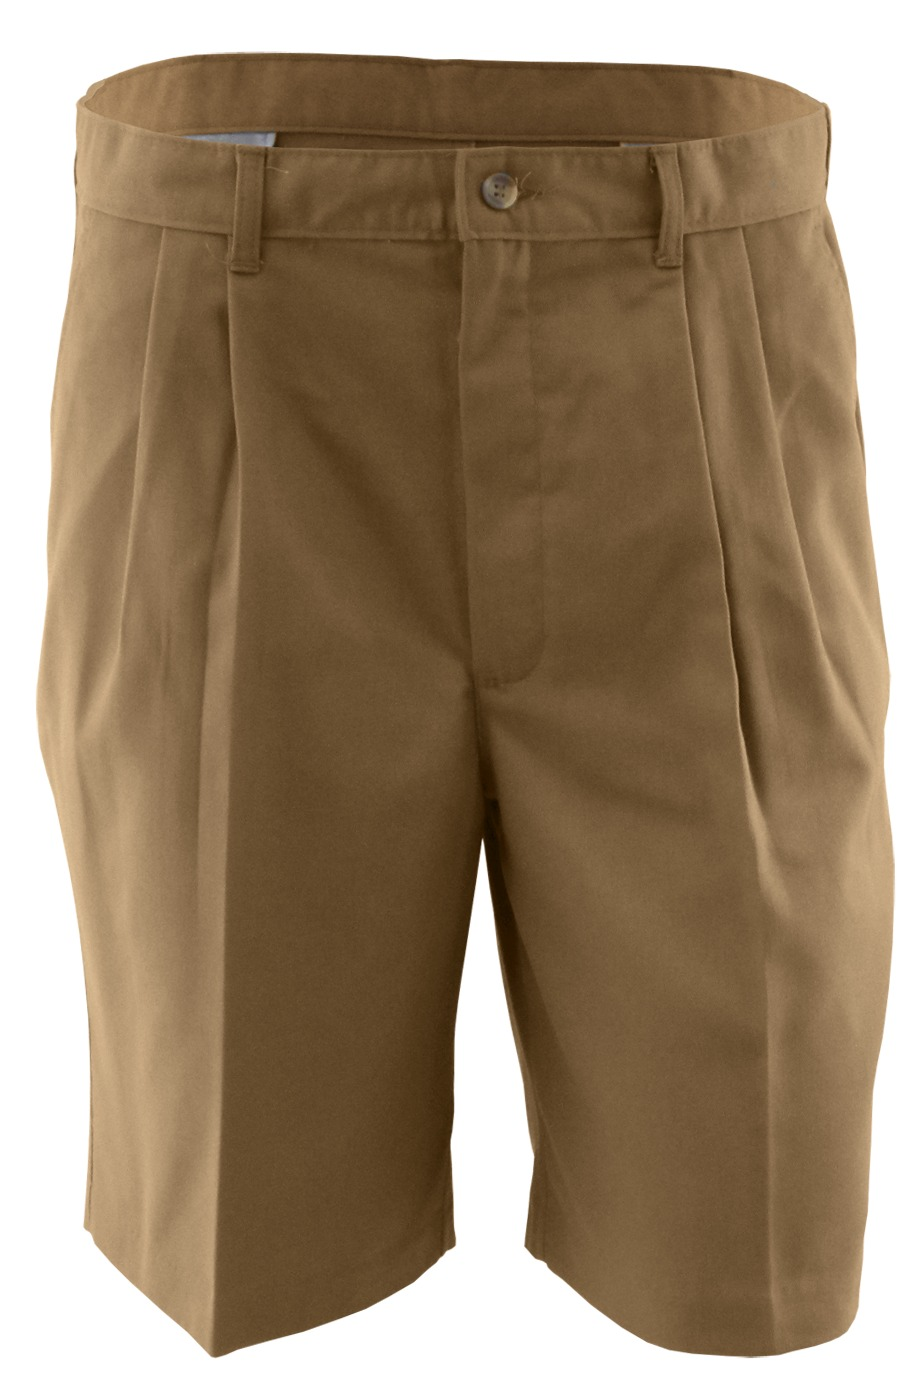 Edwards Garment 2470 - Men's Pleated Short